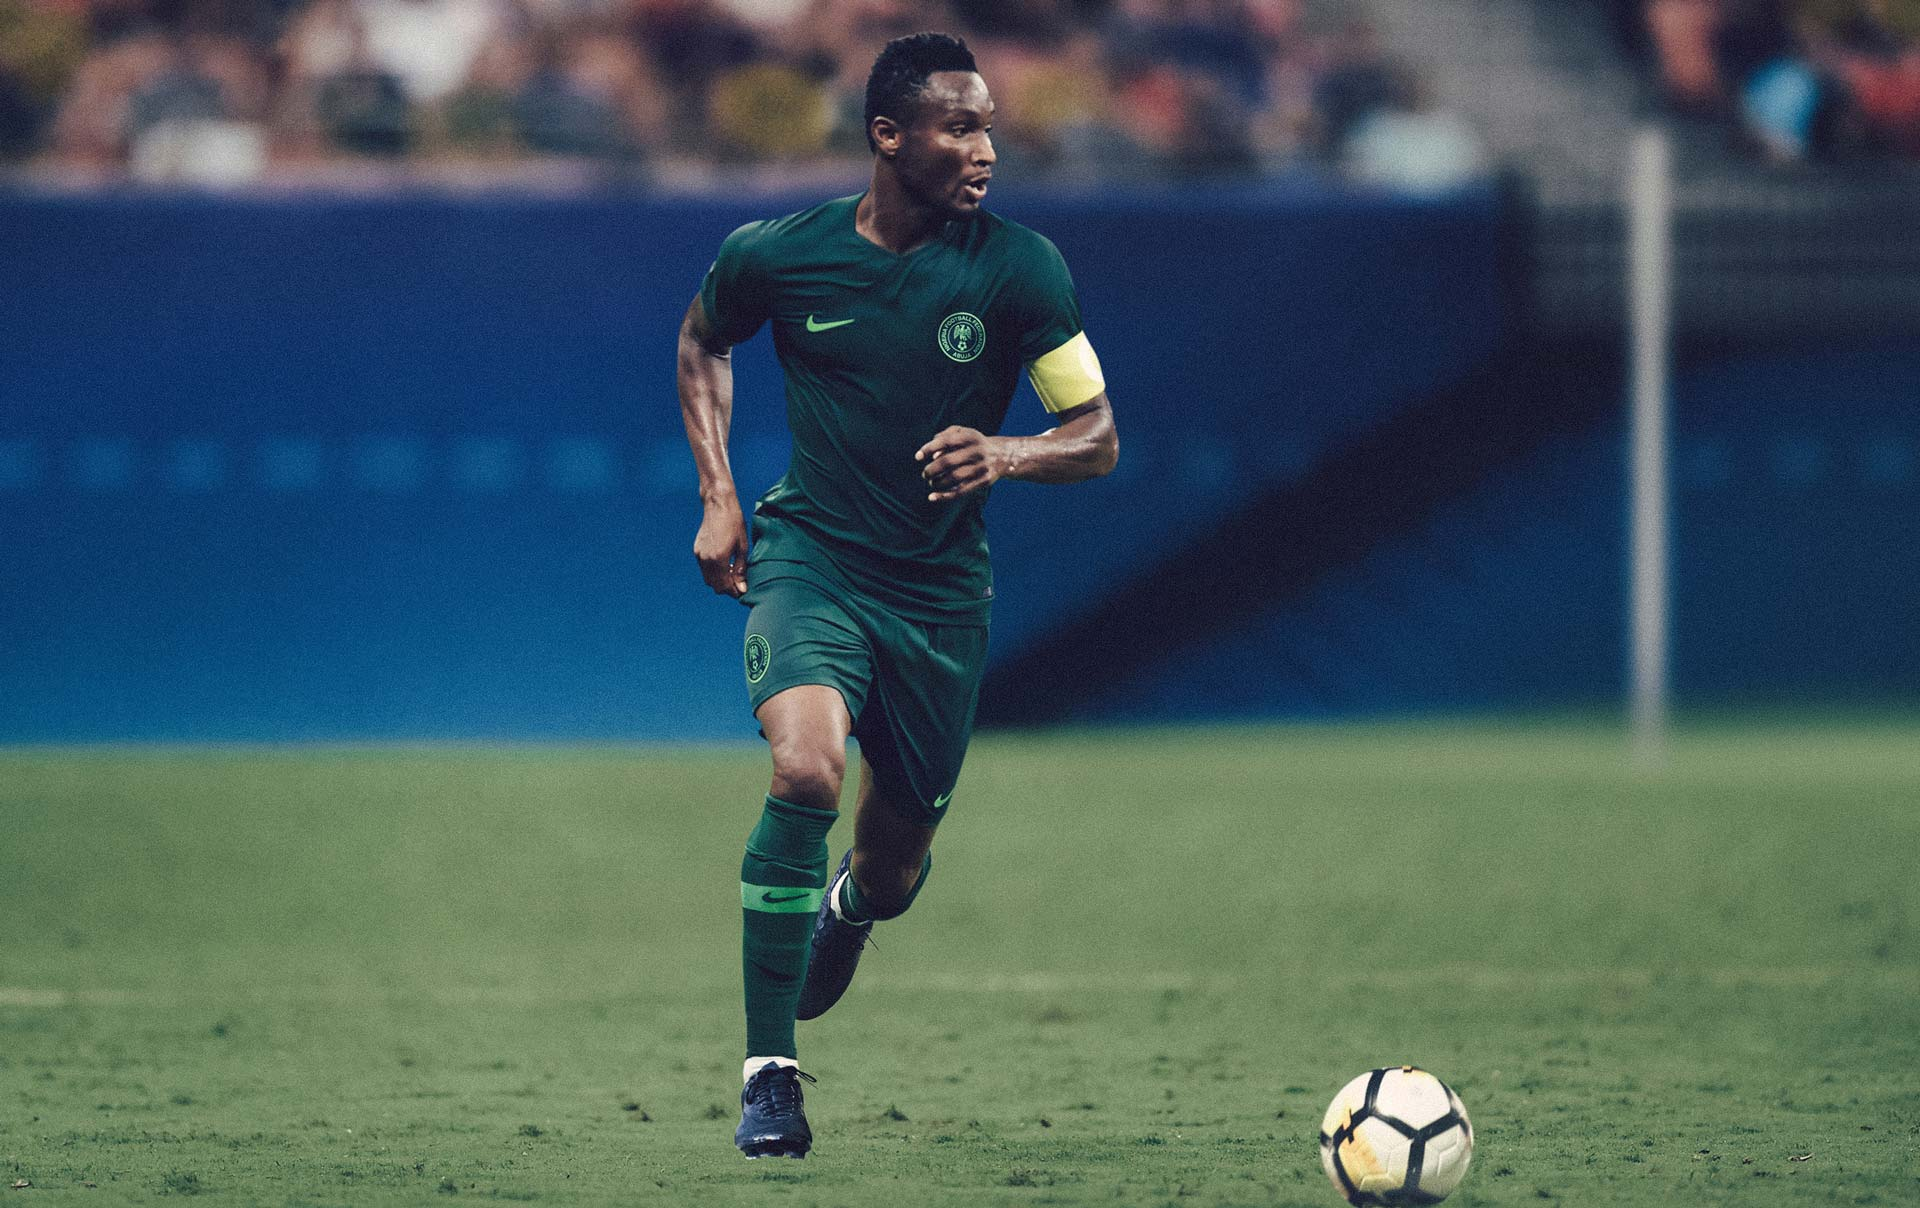 Nike-News-Football-Soccer-Nigeria-National-Team-Kit-12_77375_Obi_Mikel_MatthewWolff